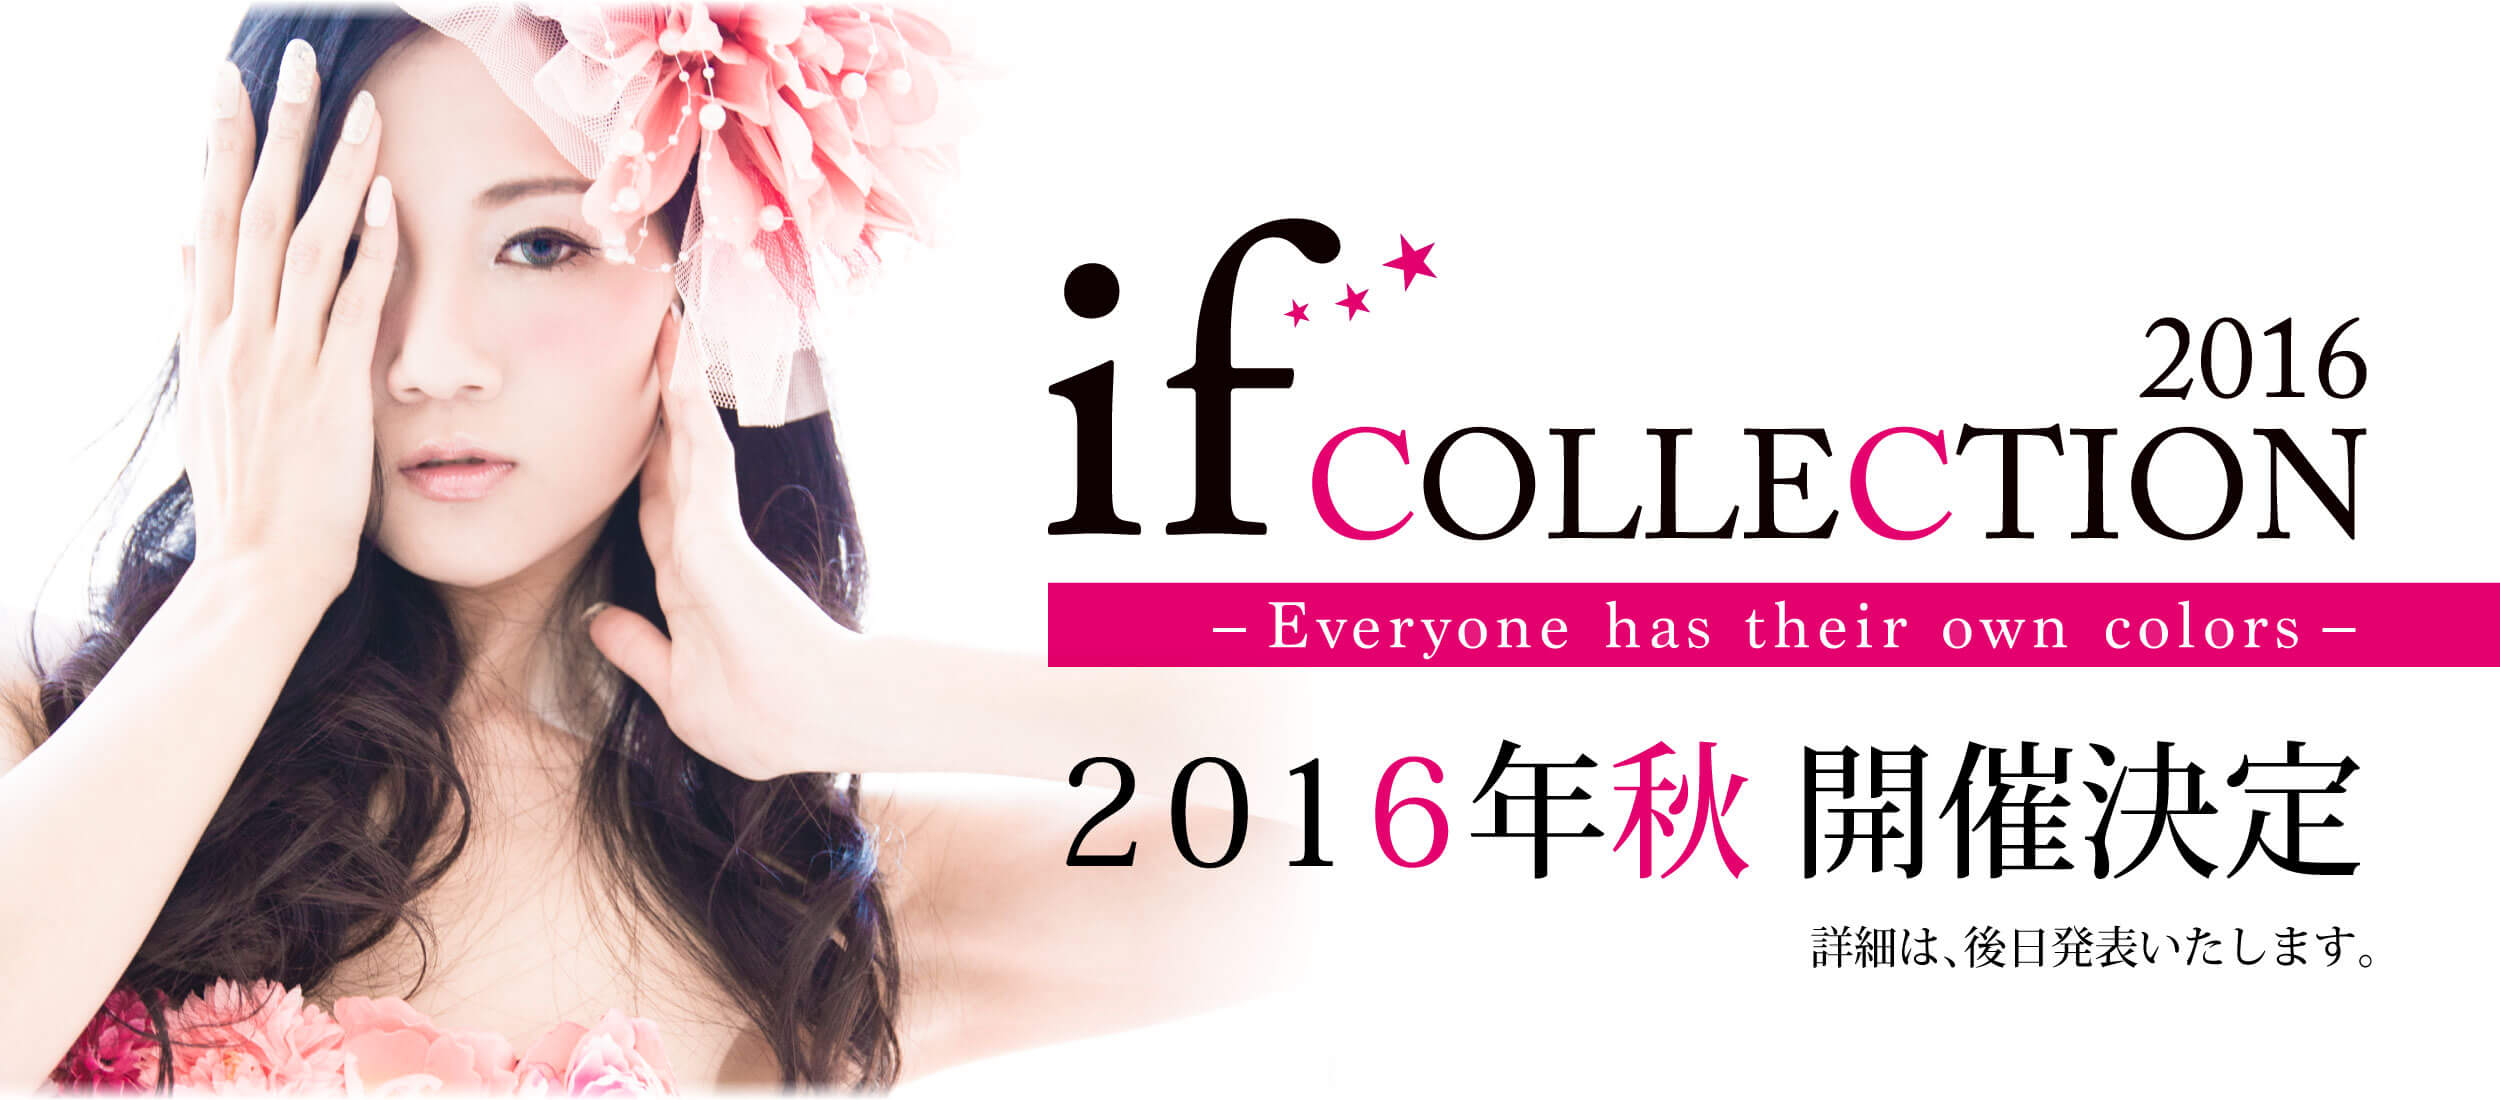 if collection 2016開催決定